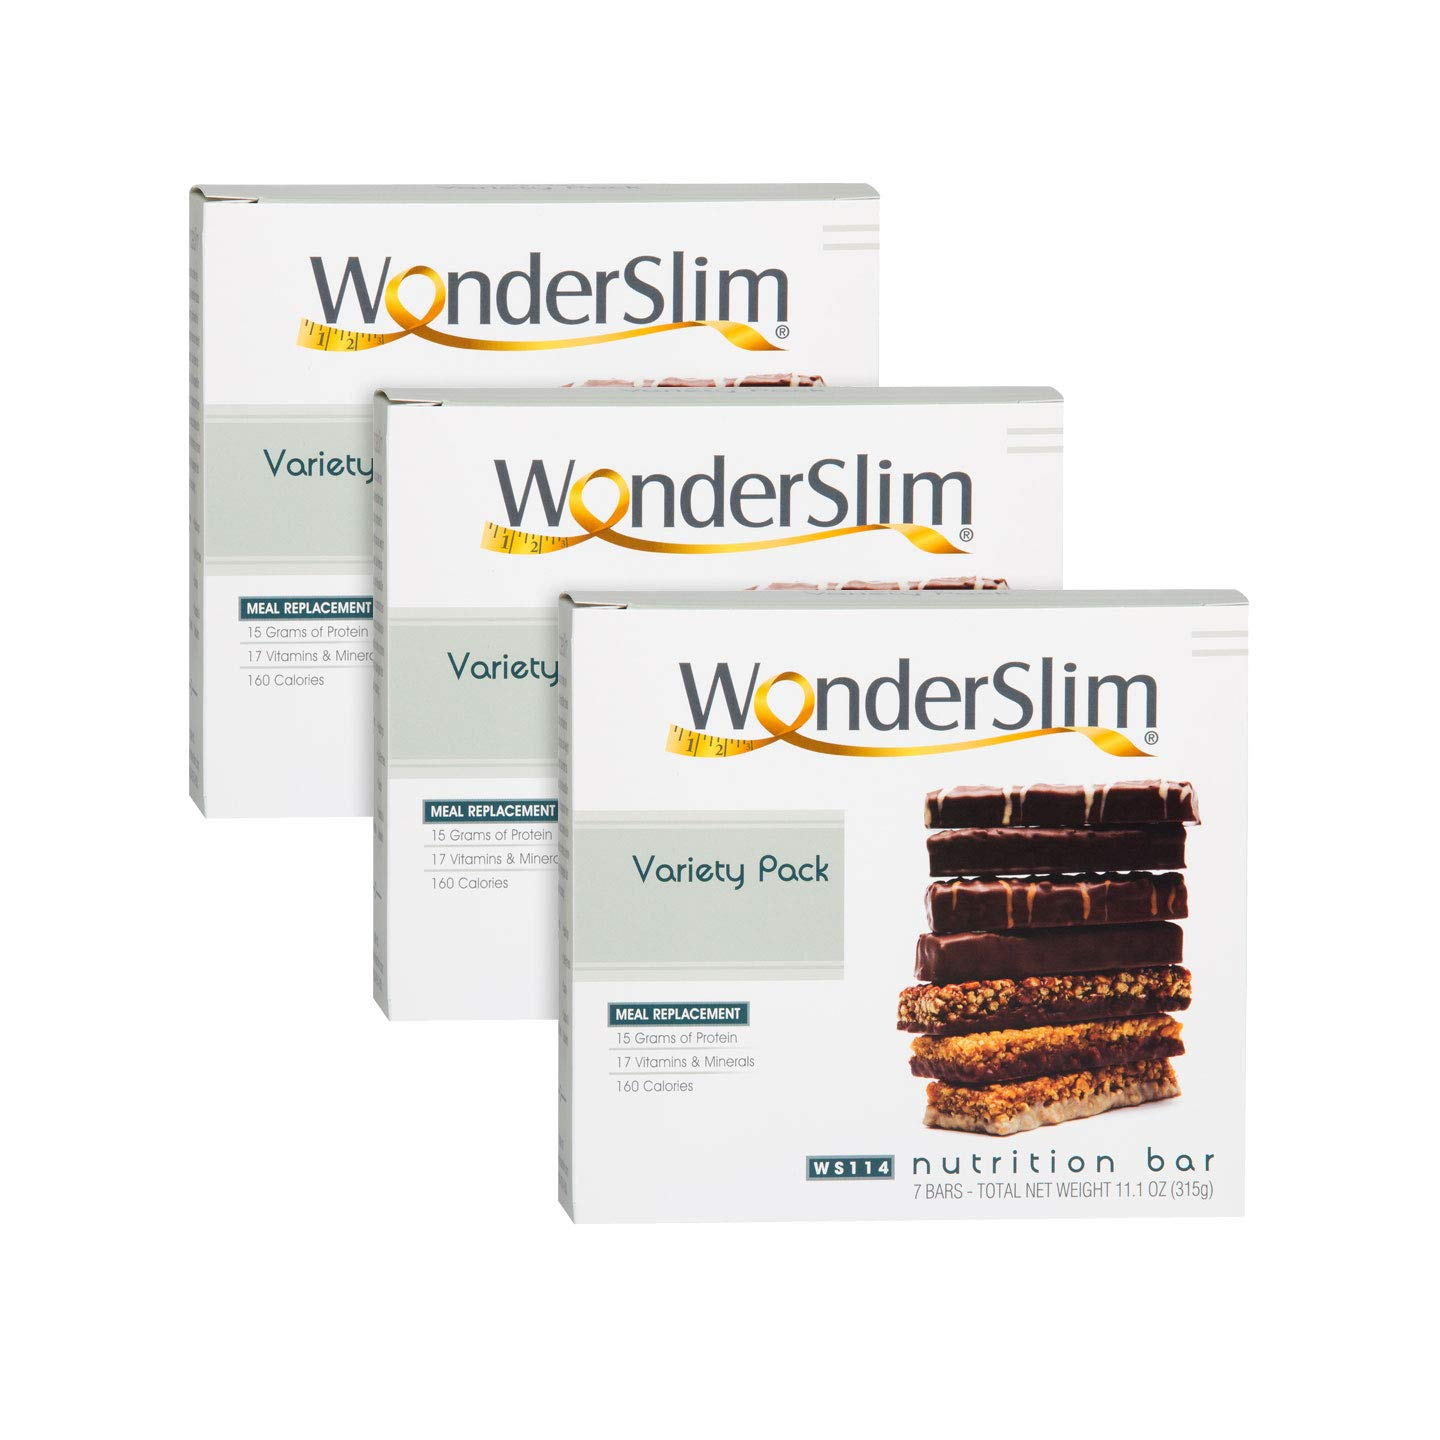 WonderSlim High Protein Meal Replacement Bar - High Fiber, Kosher, Variety Pack - 3 Box Value-Pack (Save 5%) by WonderSlim (Image #1)